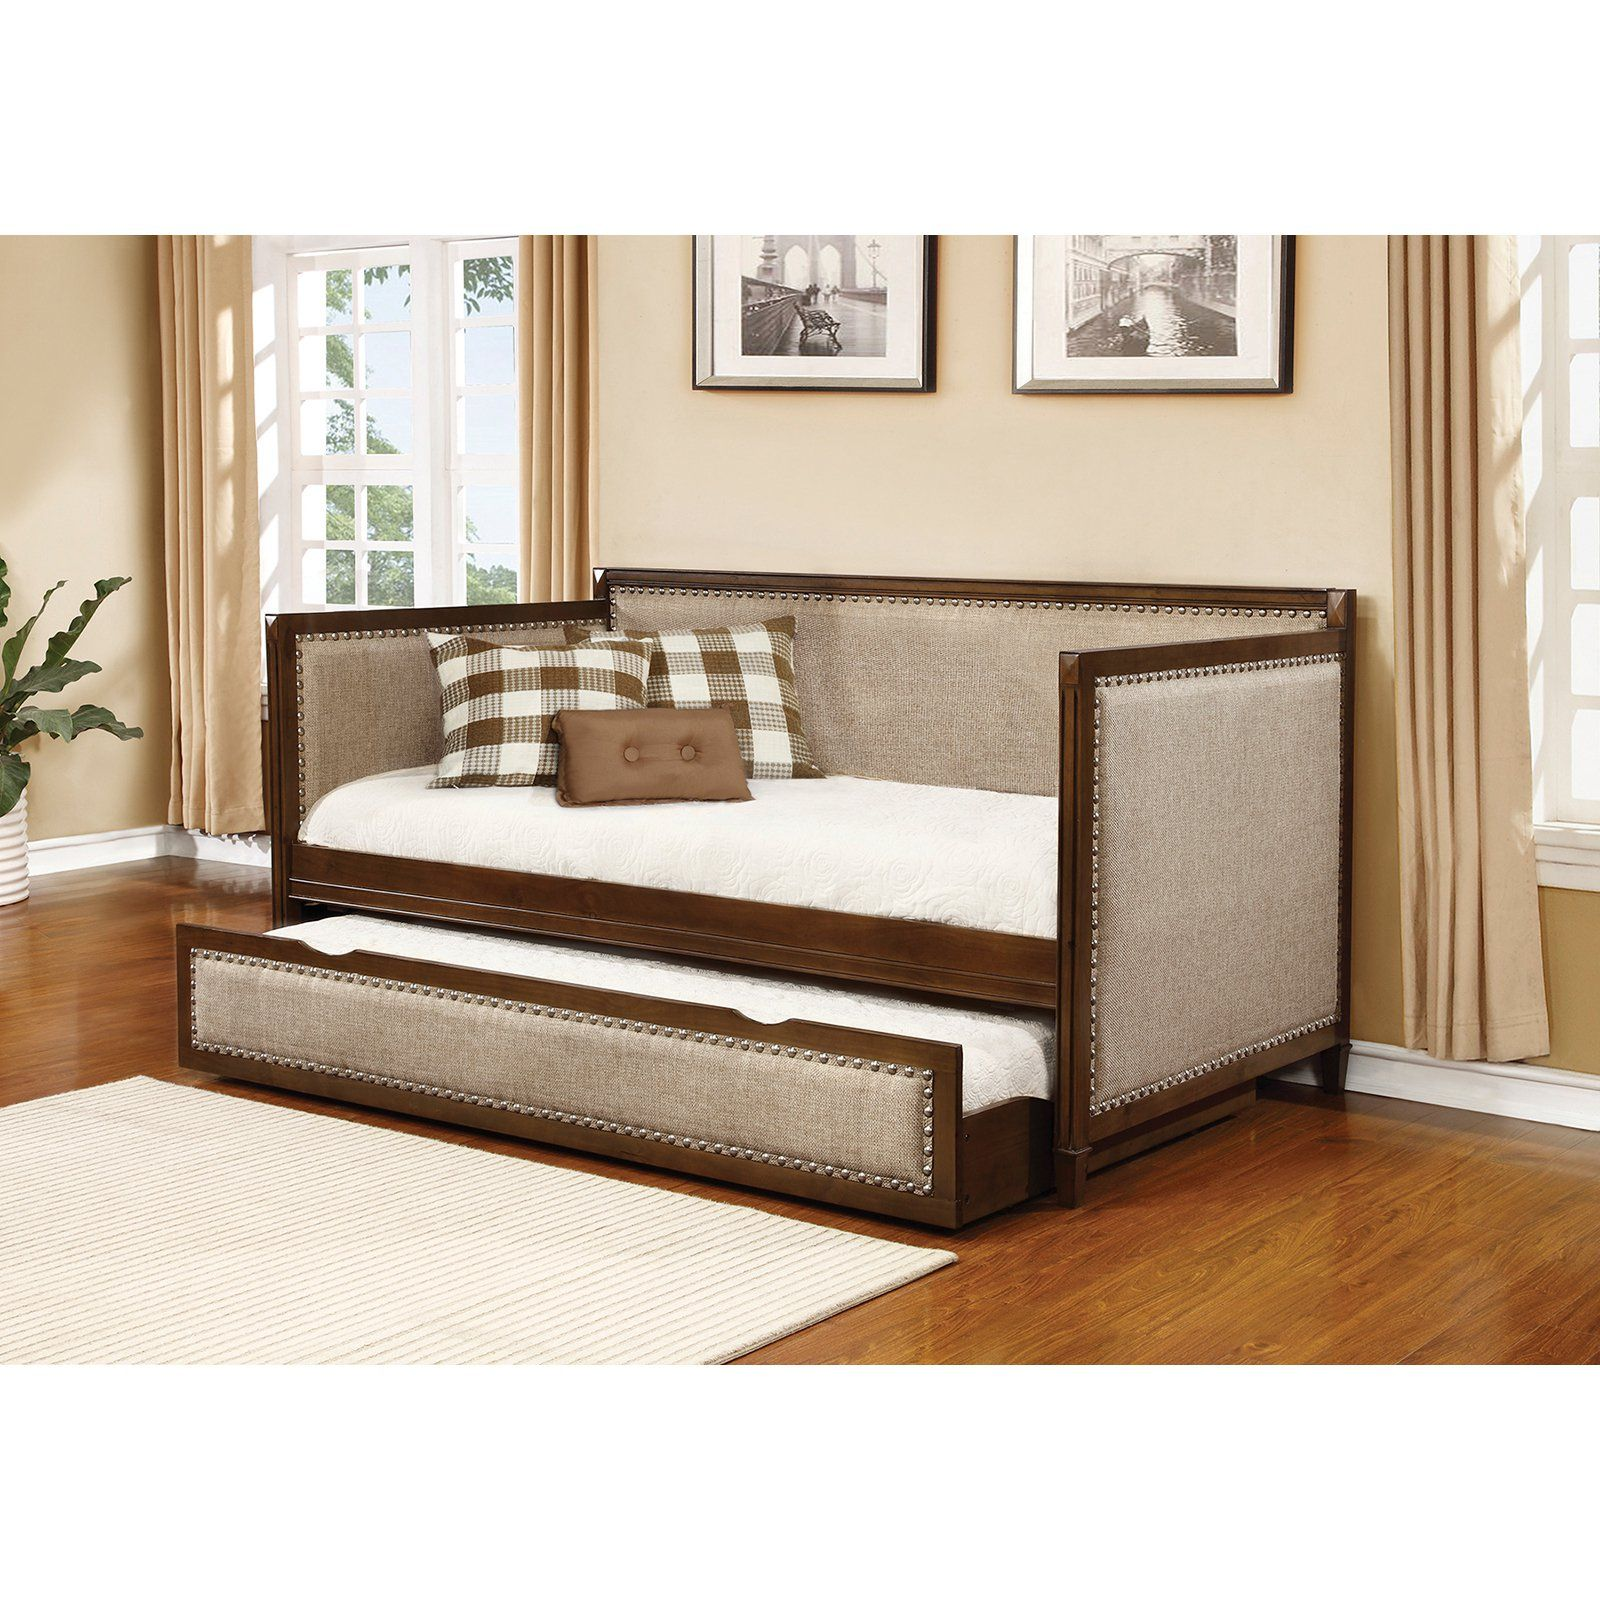 Coaster Furniture Carriere Upholstered Daybed With Trundle - From Hayneedlecom